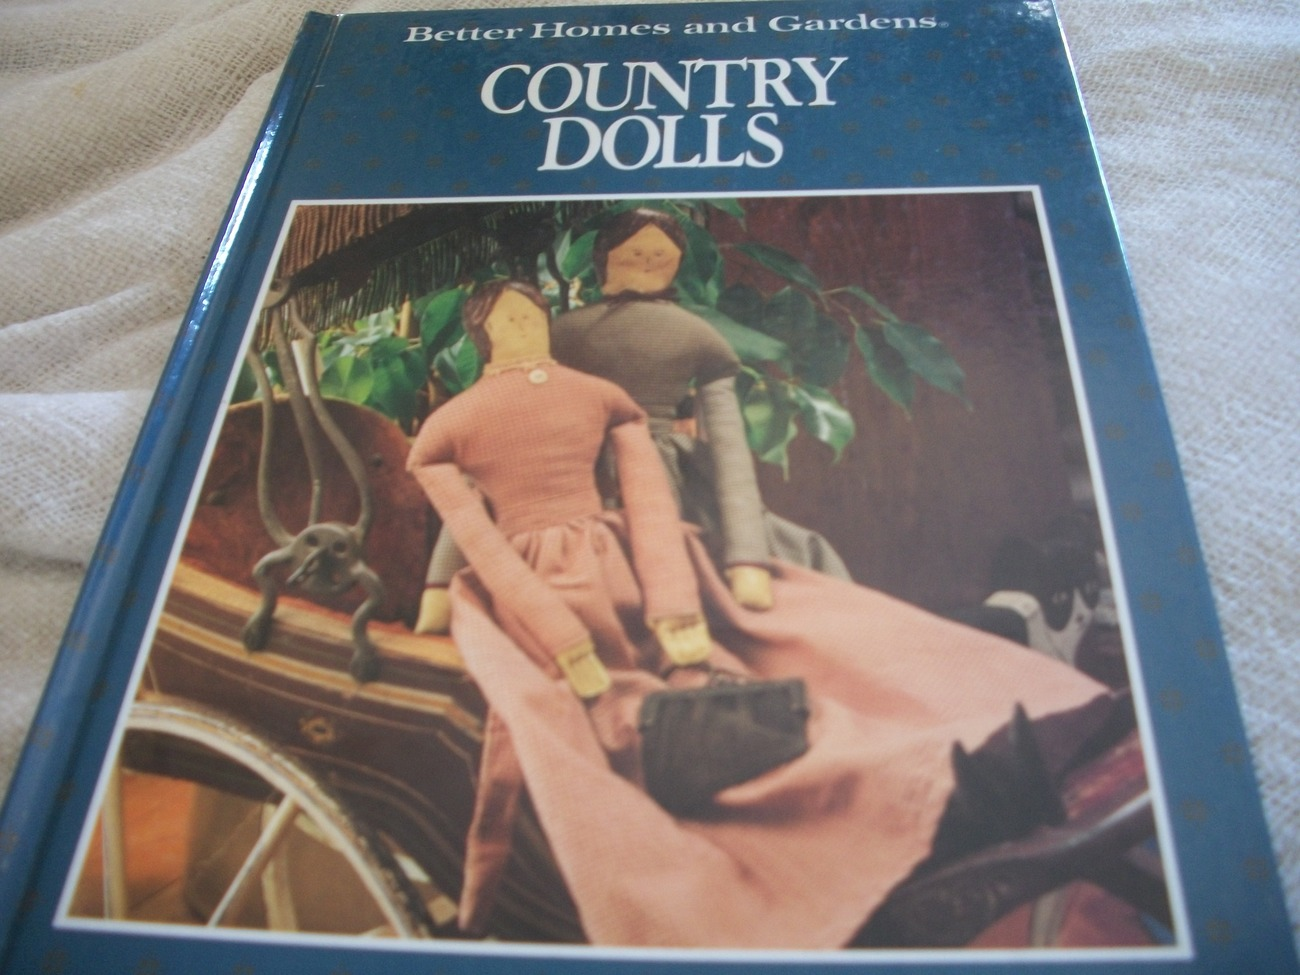 Better Homes and Gardens Country Dolls - $5.00